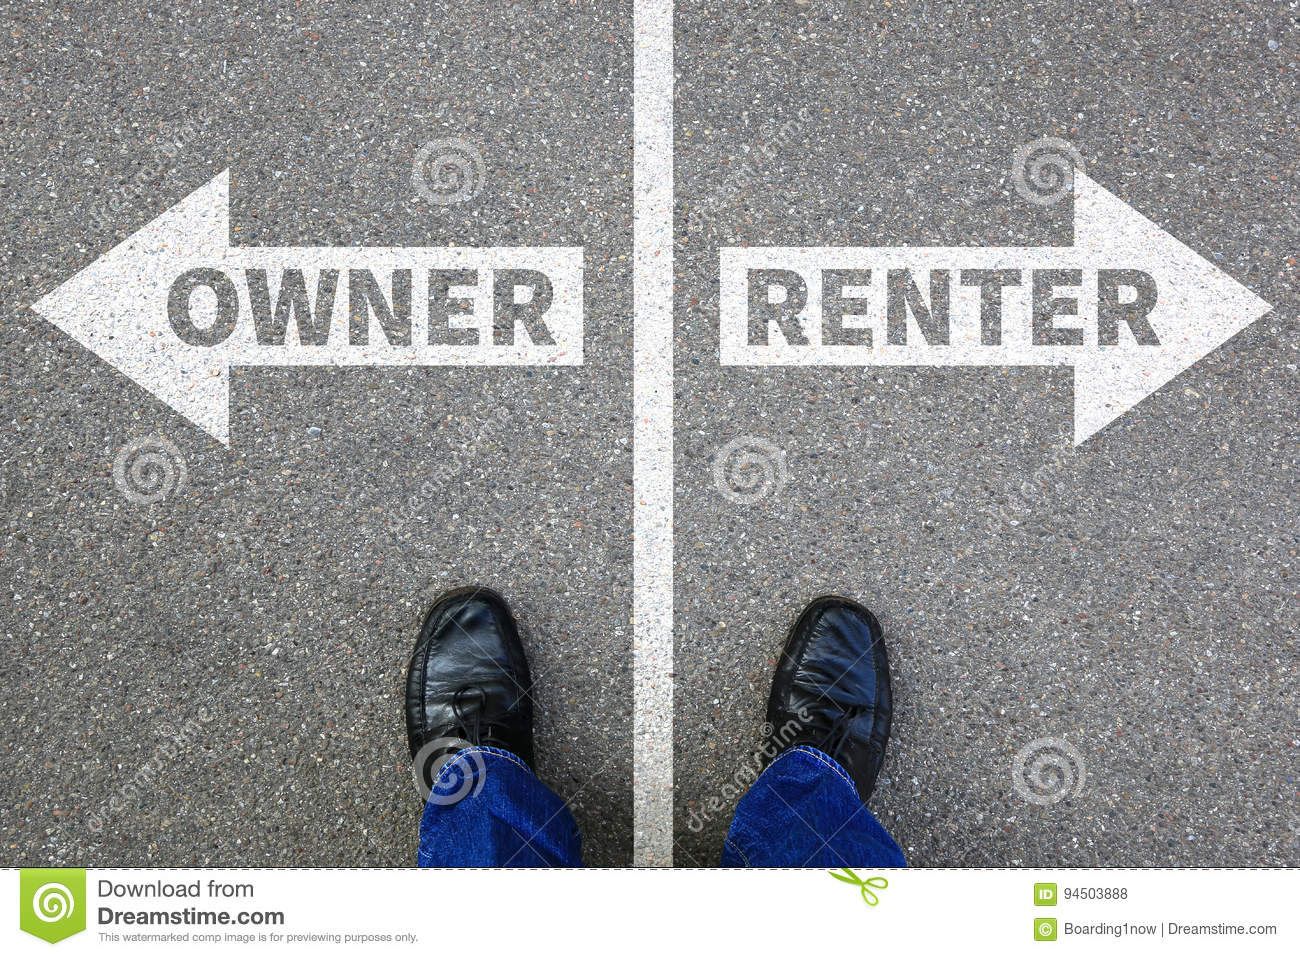 Owner renter rent own ownership rental purchase real estate house apartment concept